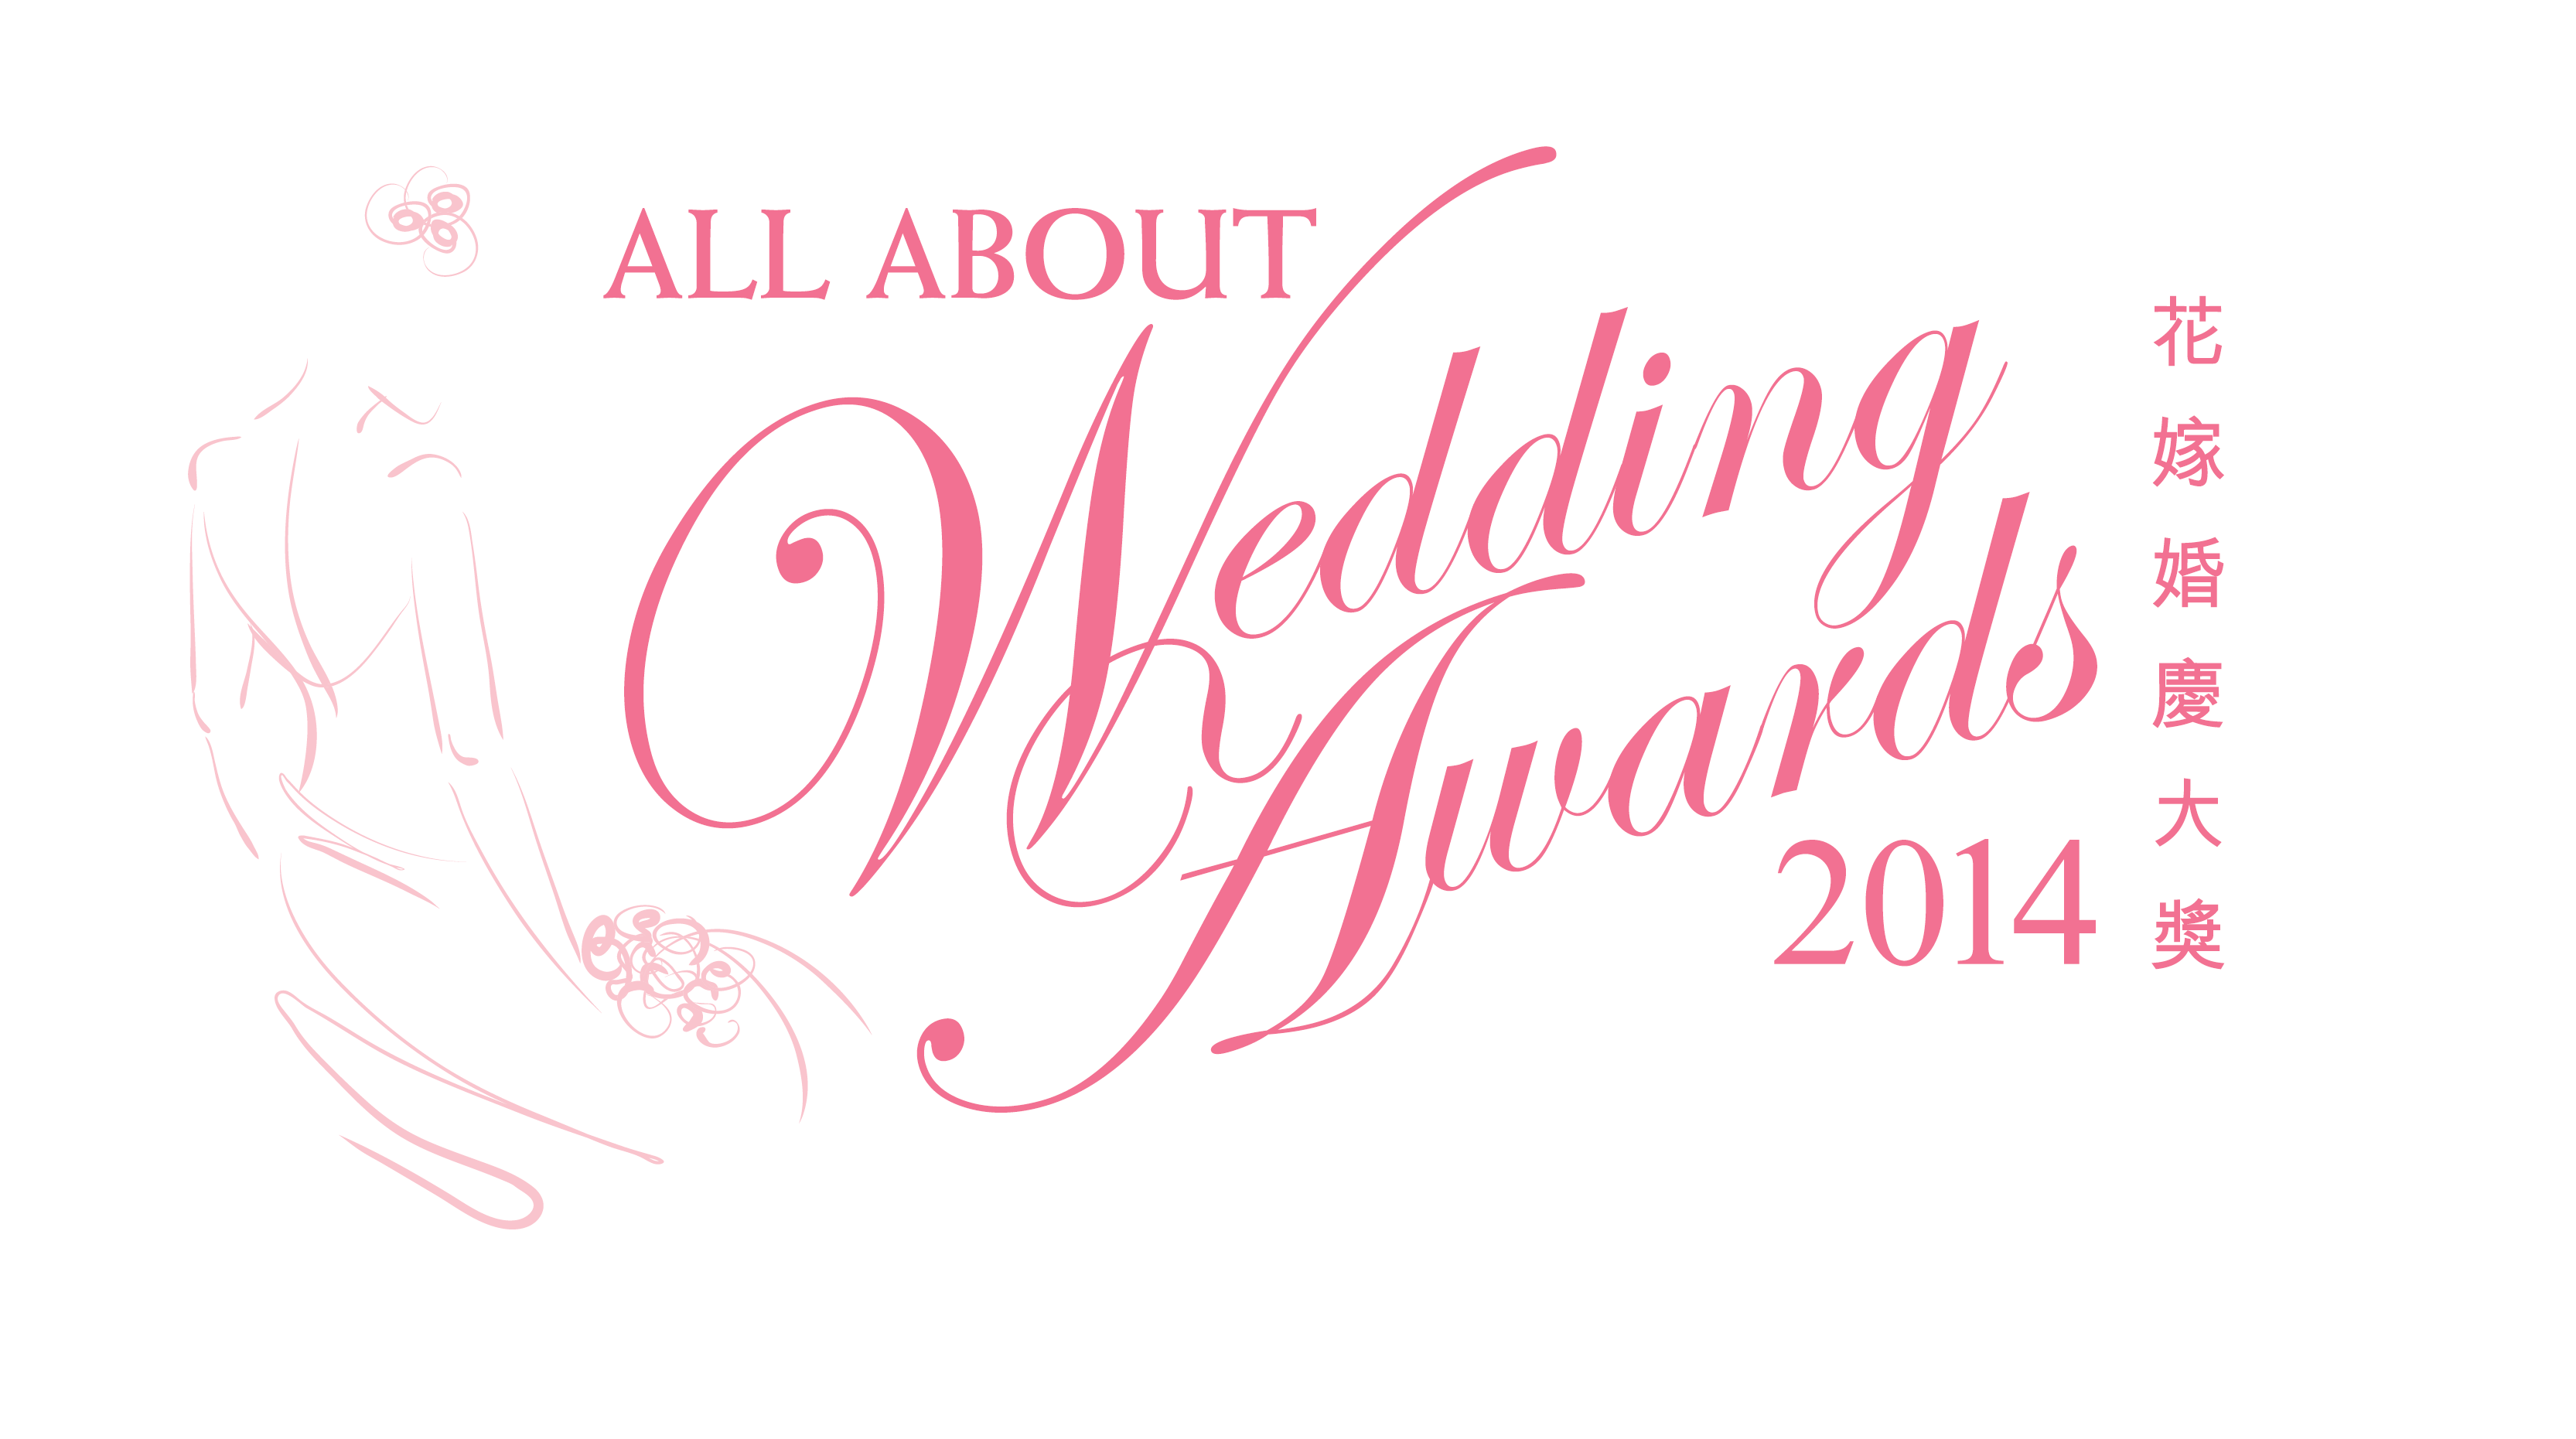 all about wedding 2014 awards